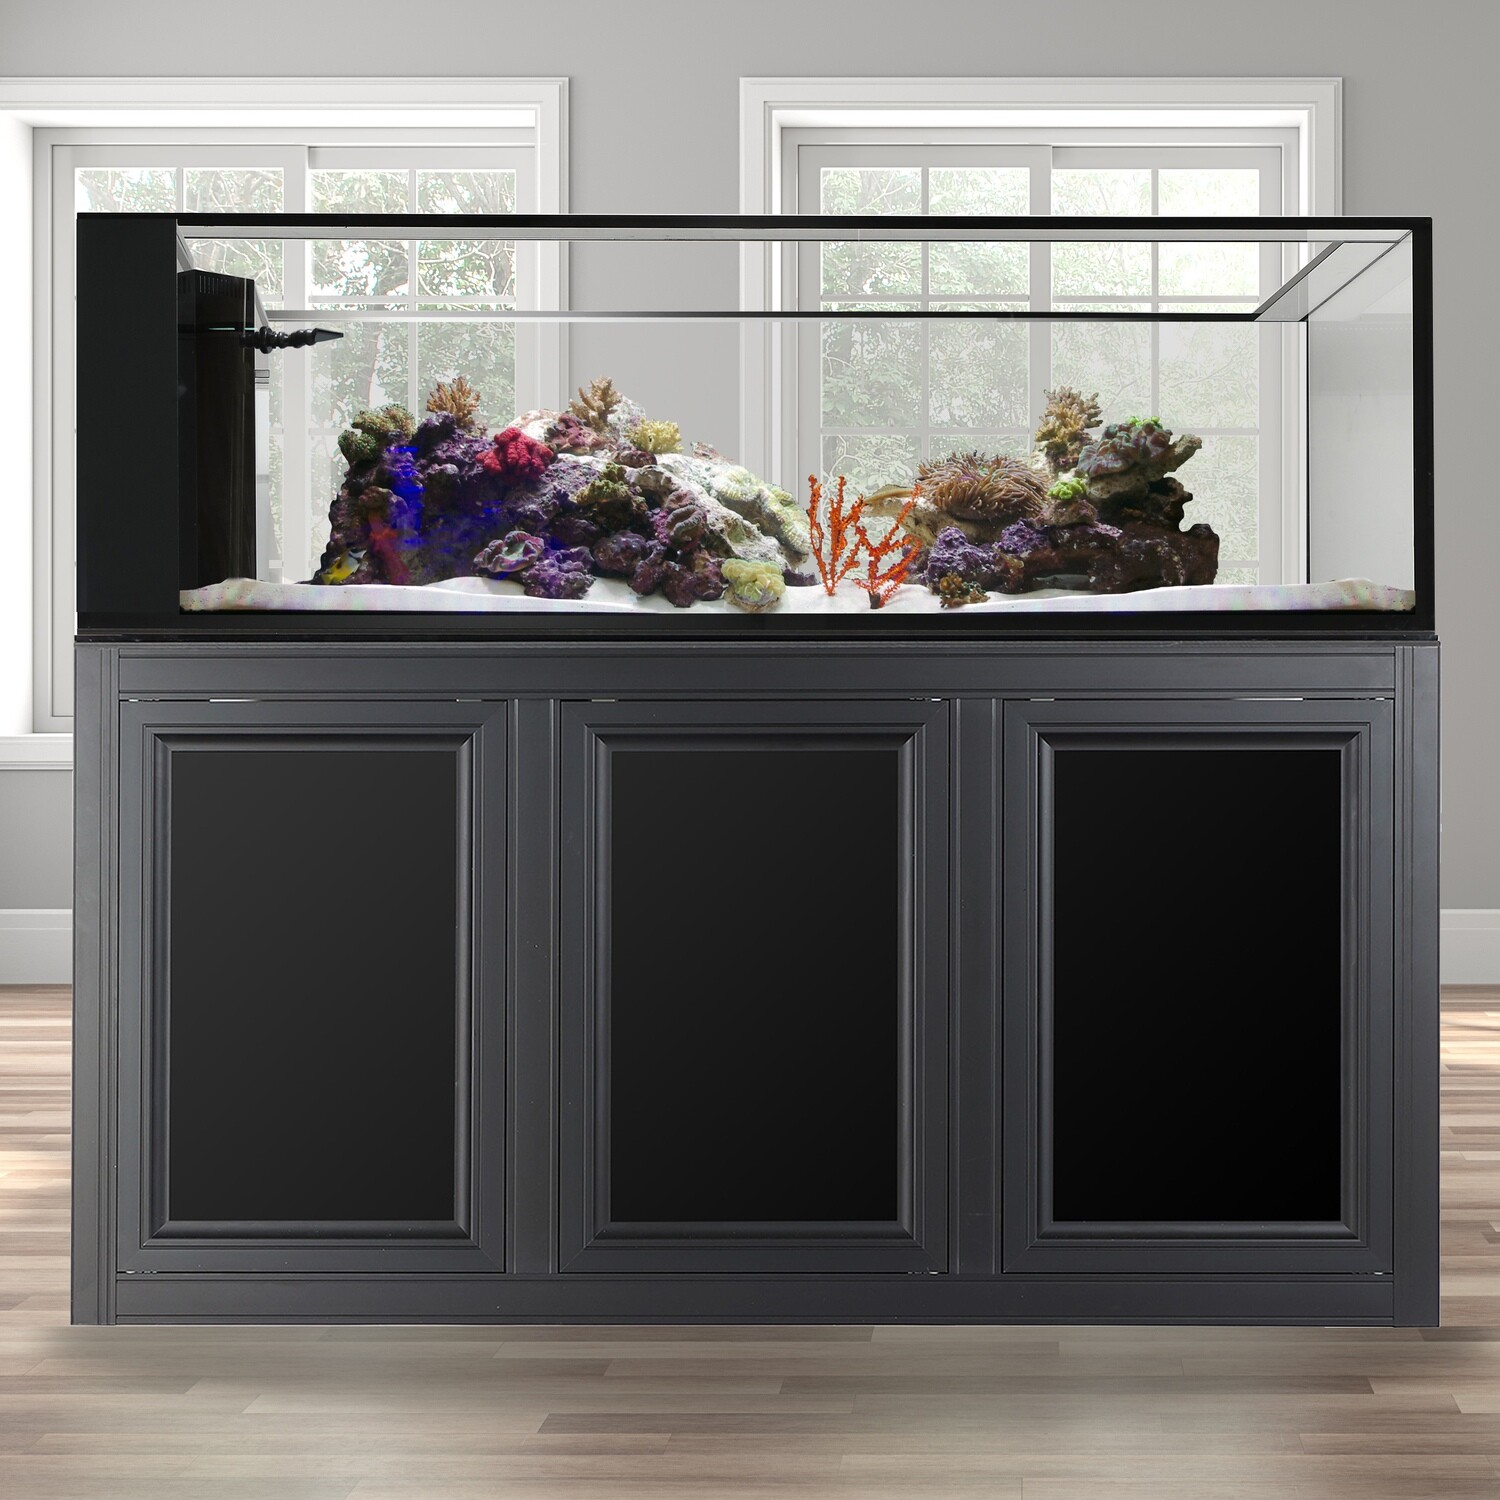 INT 200 Peninsula Aquarium w/APS Stand - Black